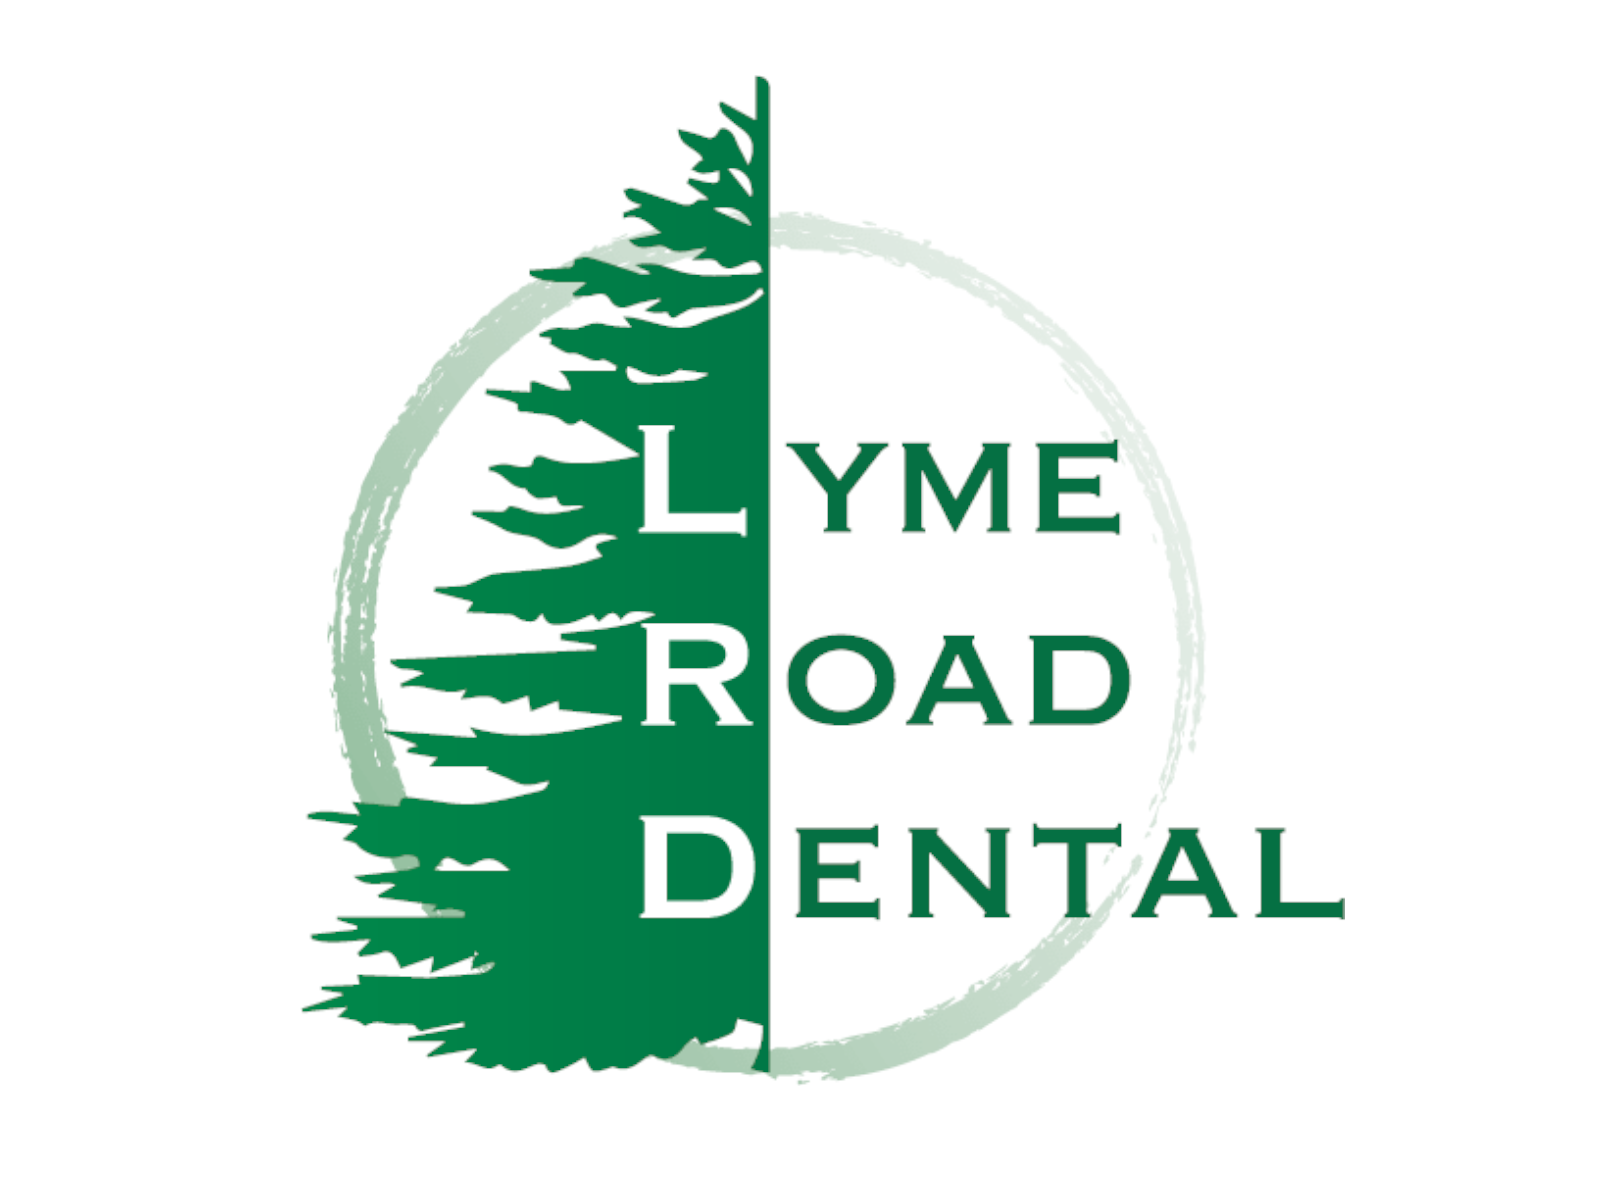 Lyme Road Dental - Hanover, NH